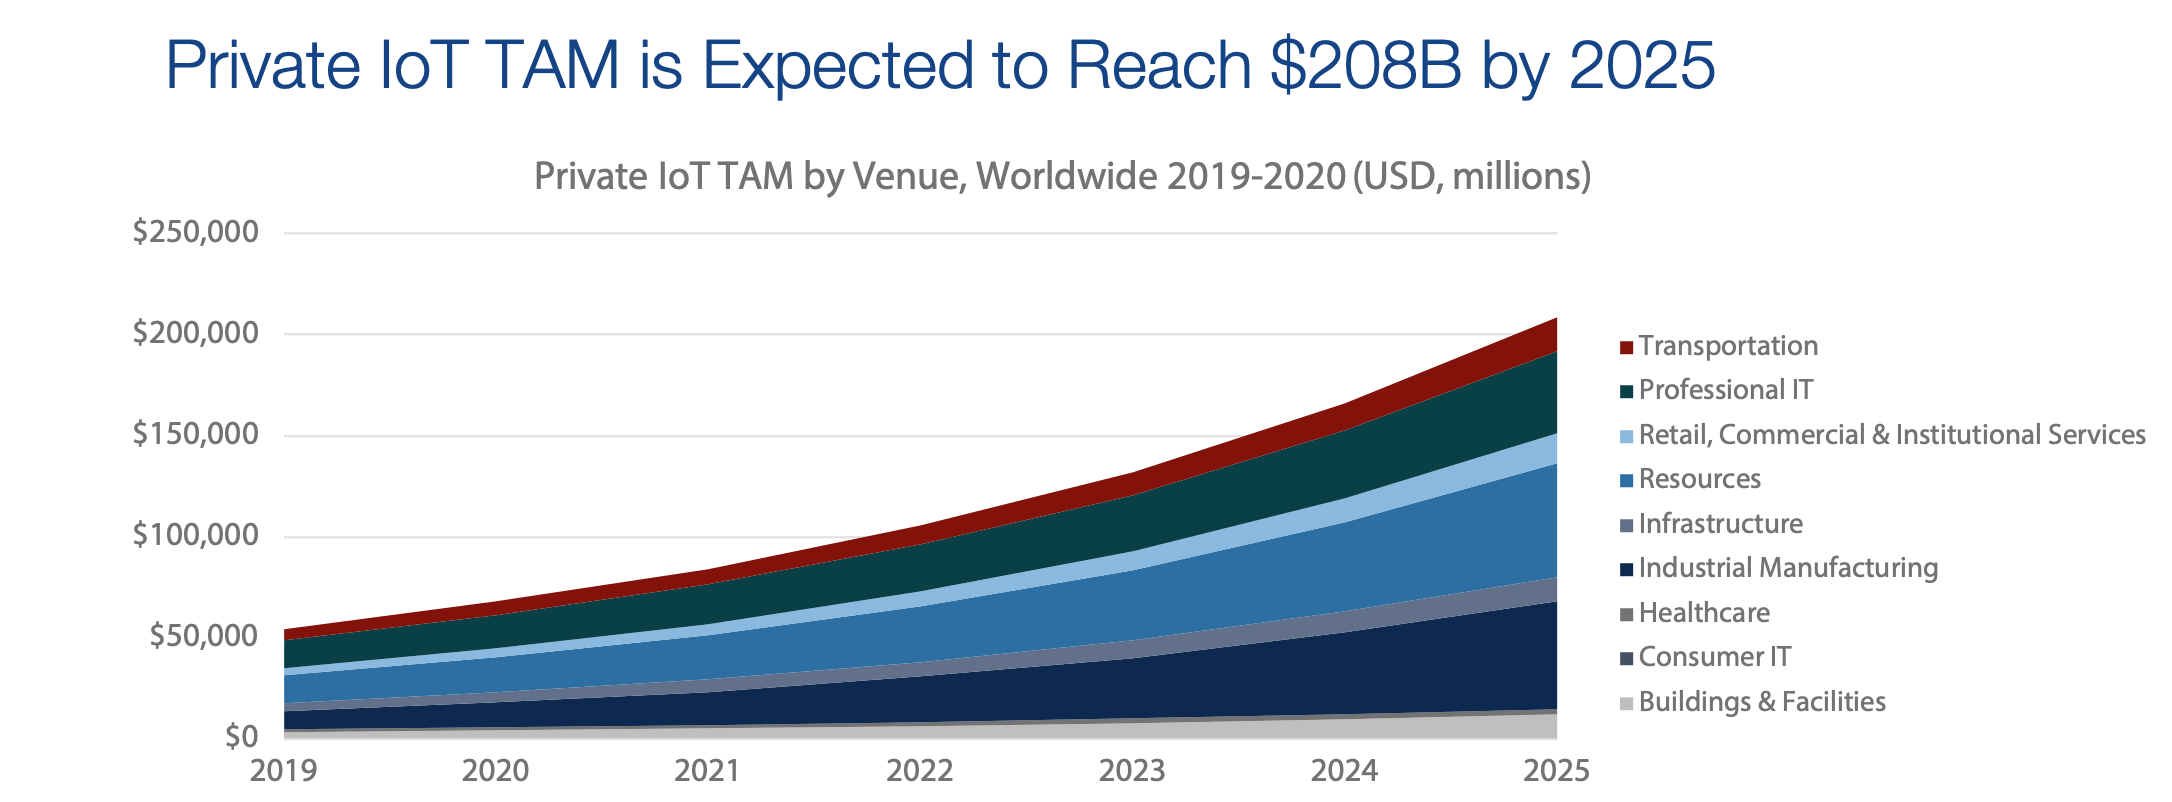 Private IoT TAM is expected to reach $208B by 2025